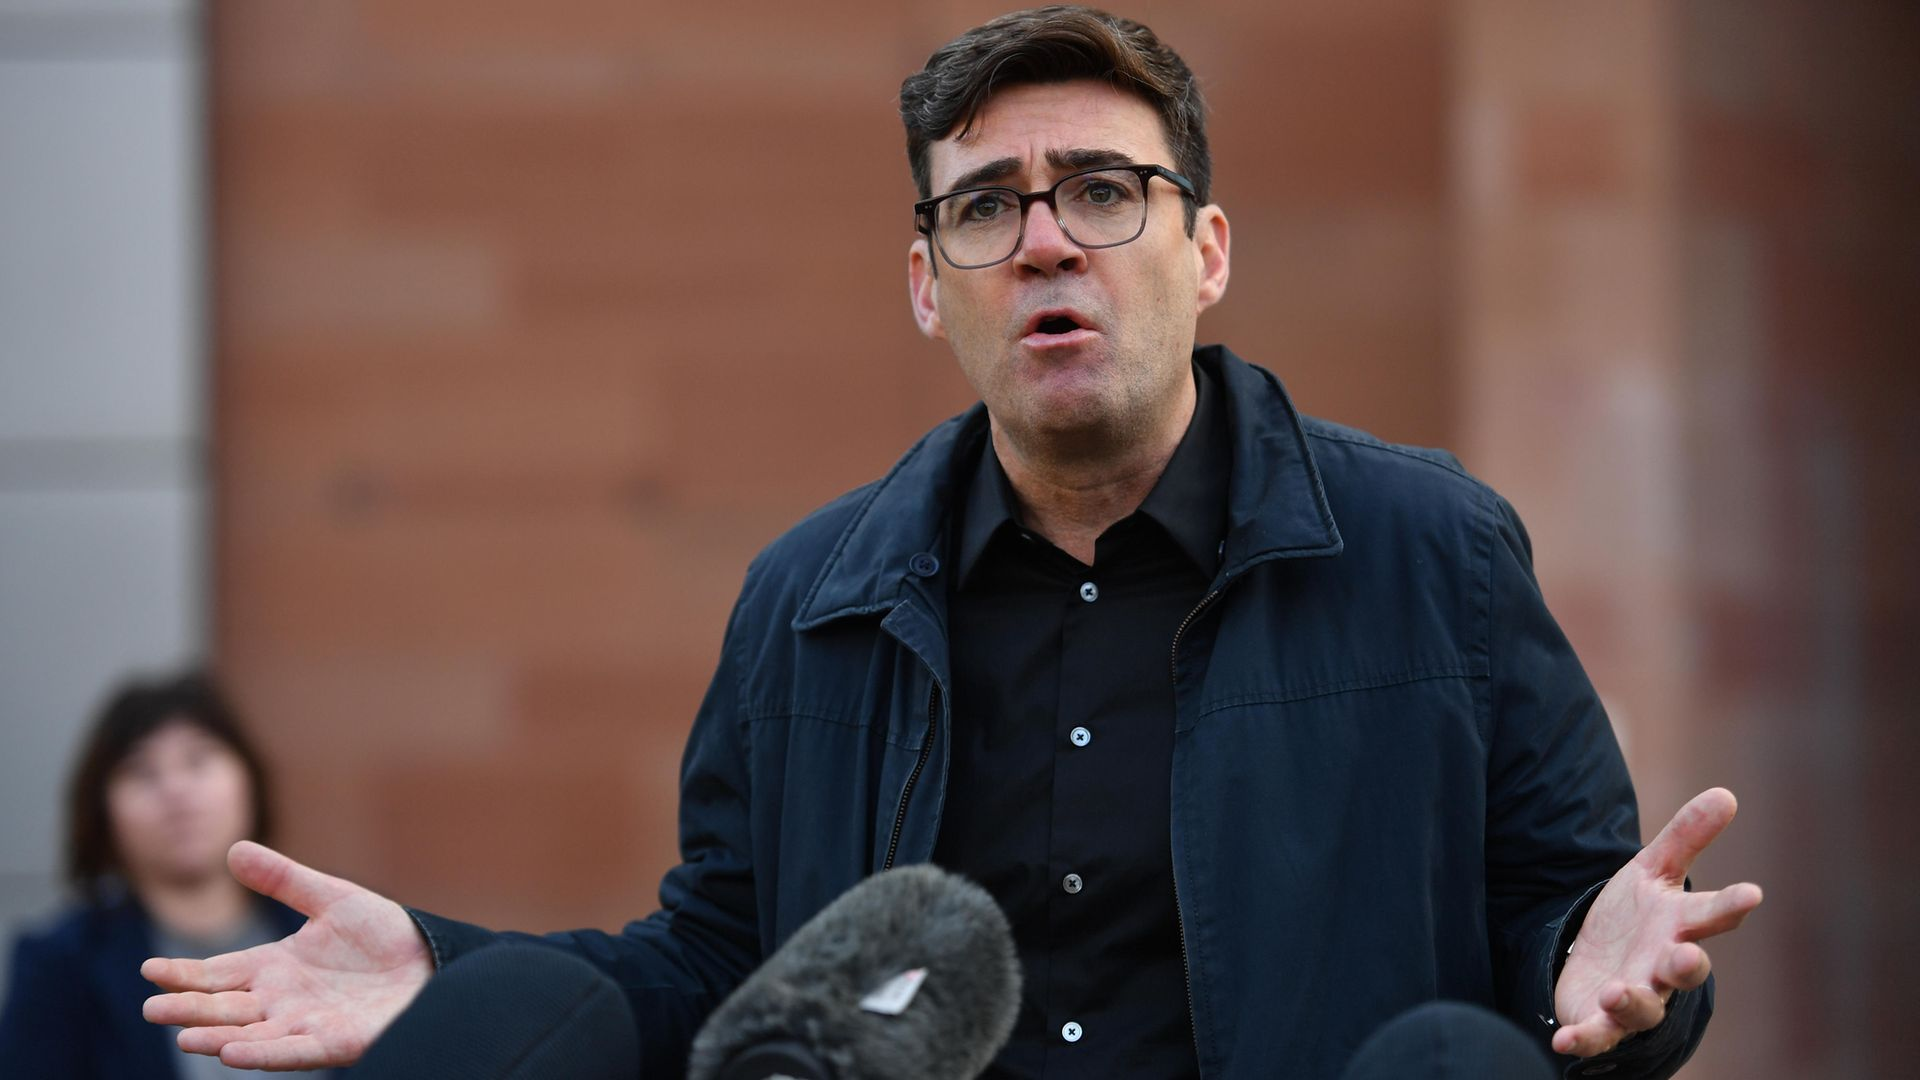 Greater Manchester mayor Andy Burnham. Burnham said Brexit was 'a new reality that needs to be embraced' - Credit: PA